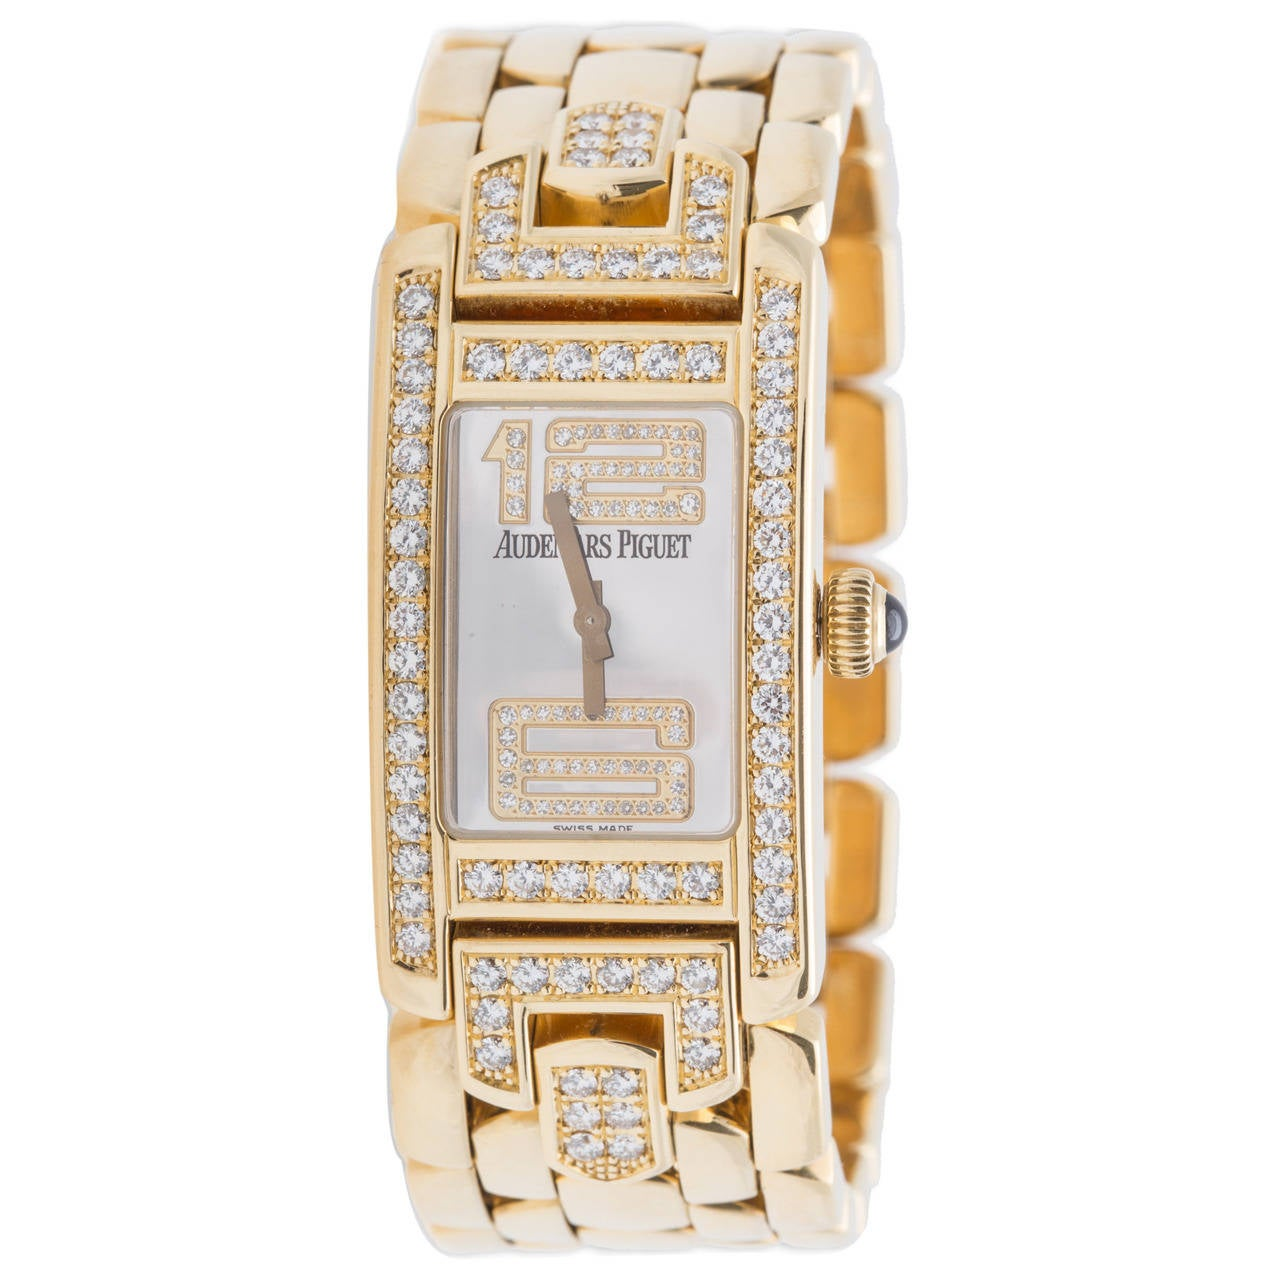 Audemars Piguet Ladies Yellow Gold Diamond Promesse Quartz Wristwatch